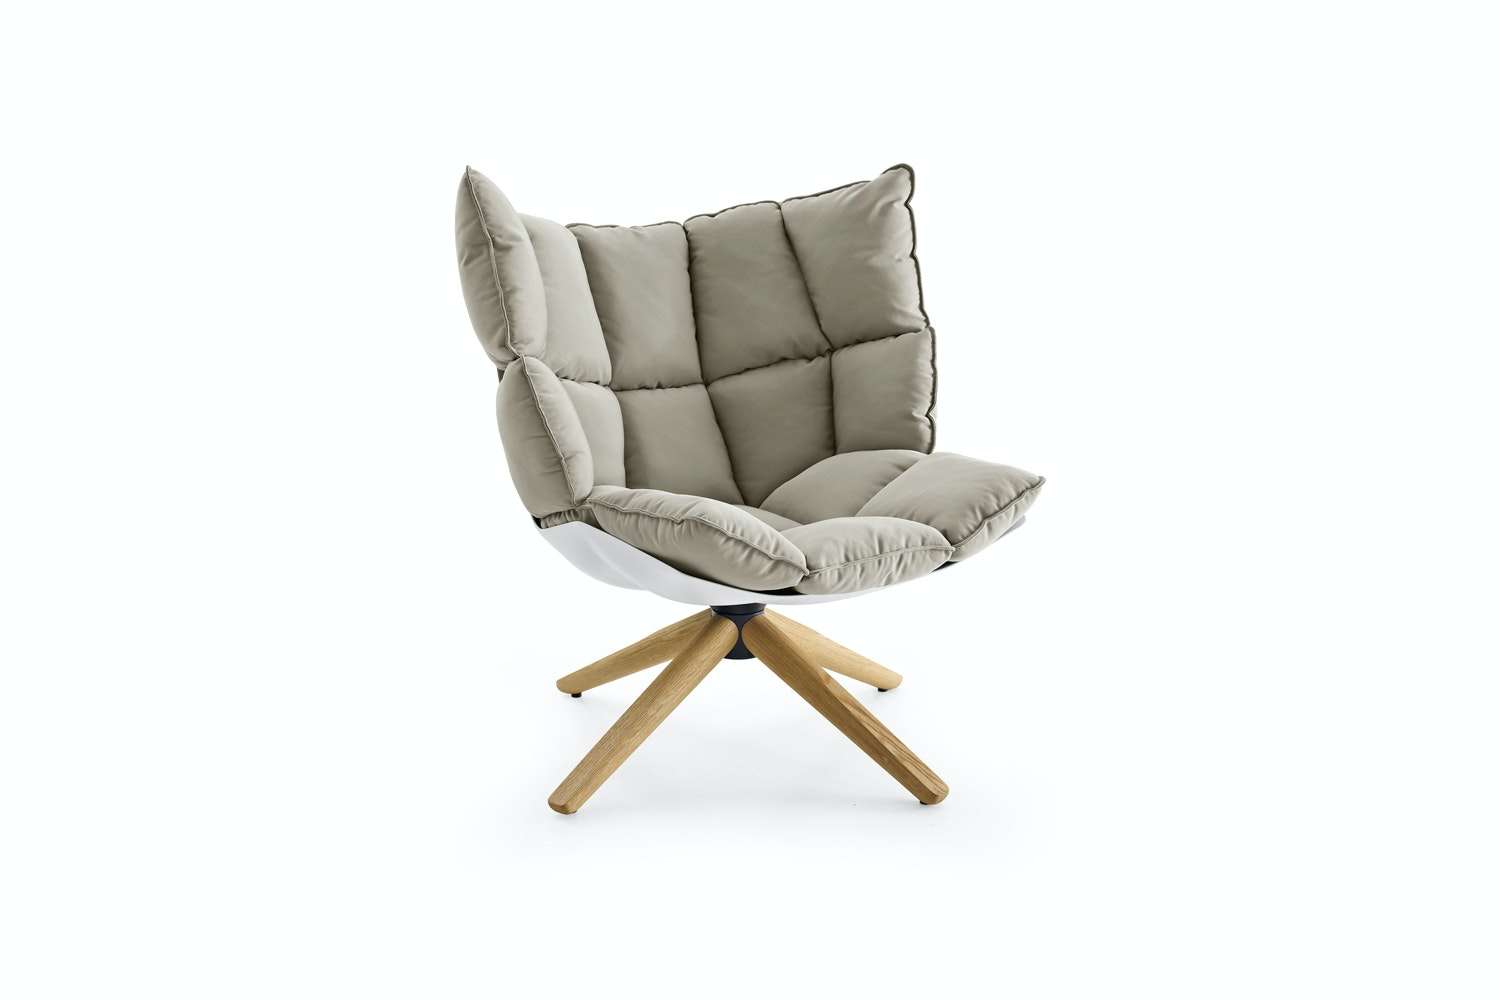 Husk Swivel Armchair with Snug Sides in Light Fabric by Patricia Urquiola for B&B Italia